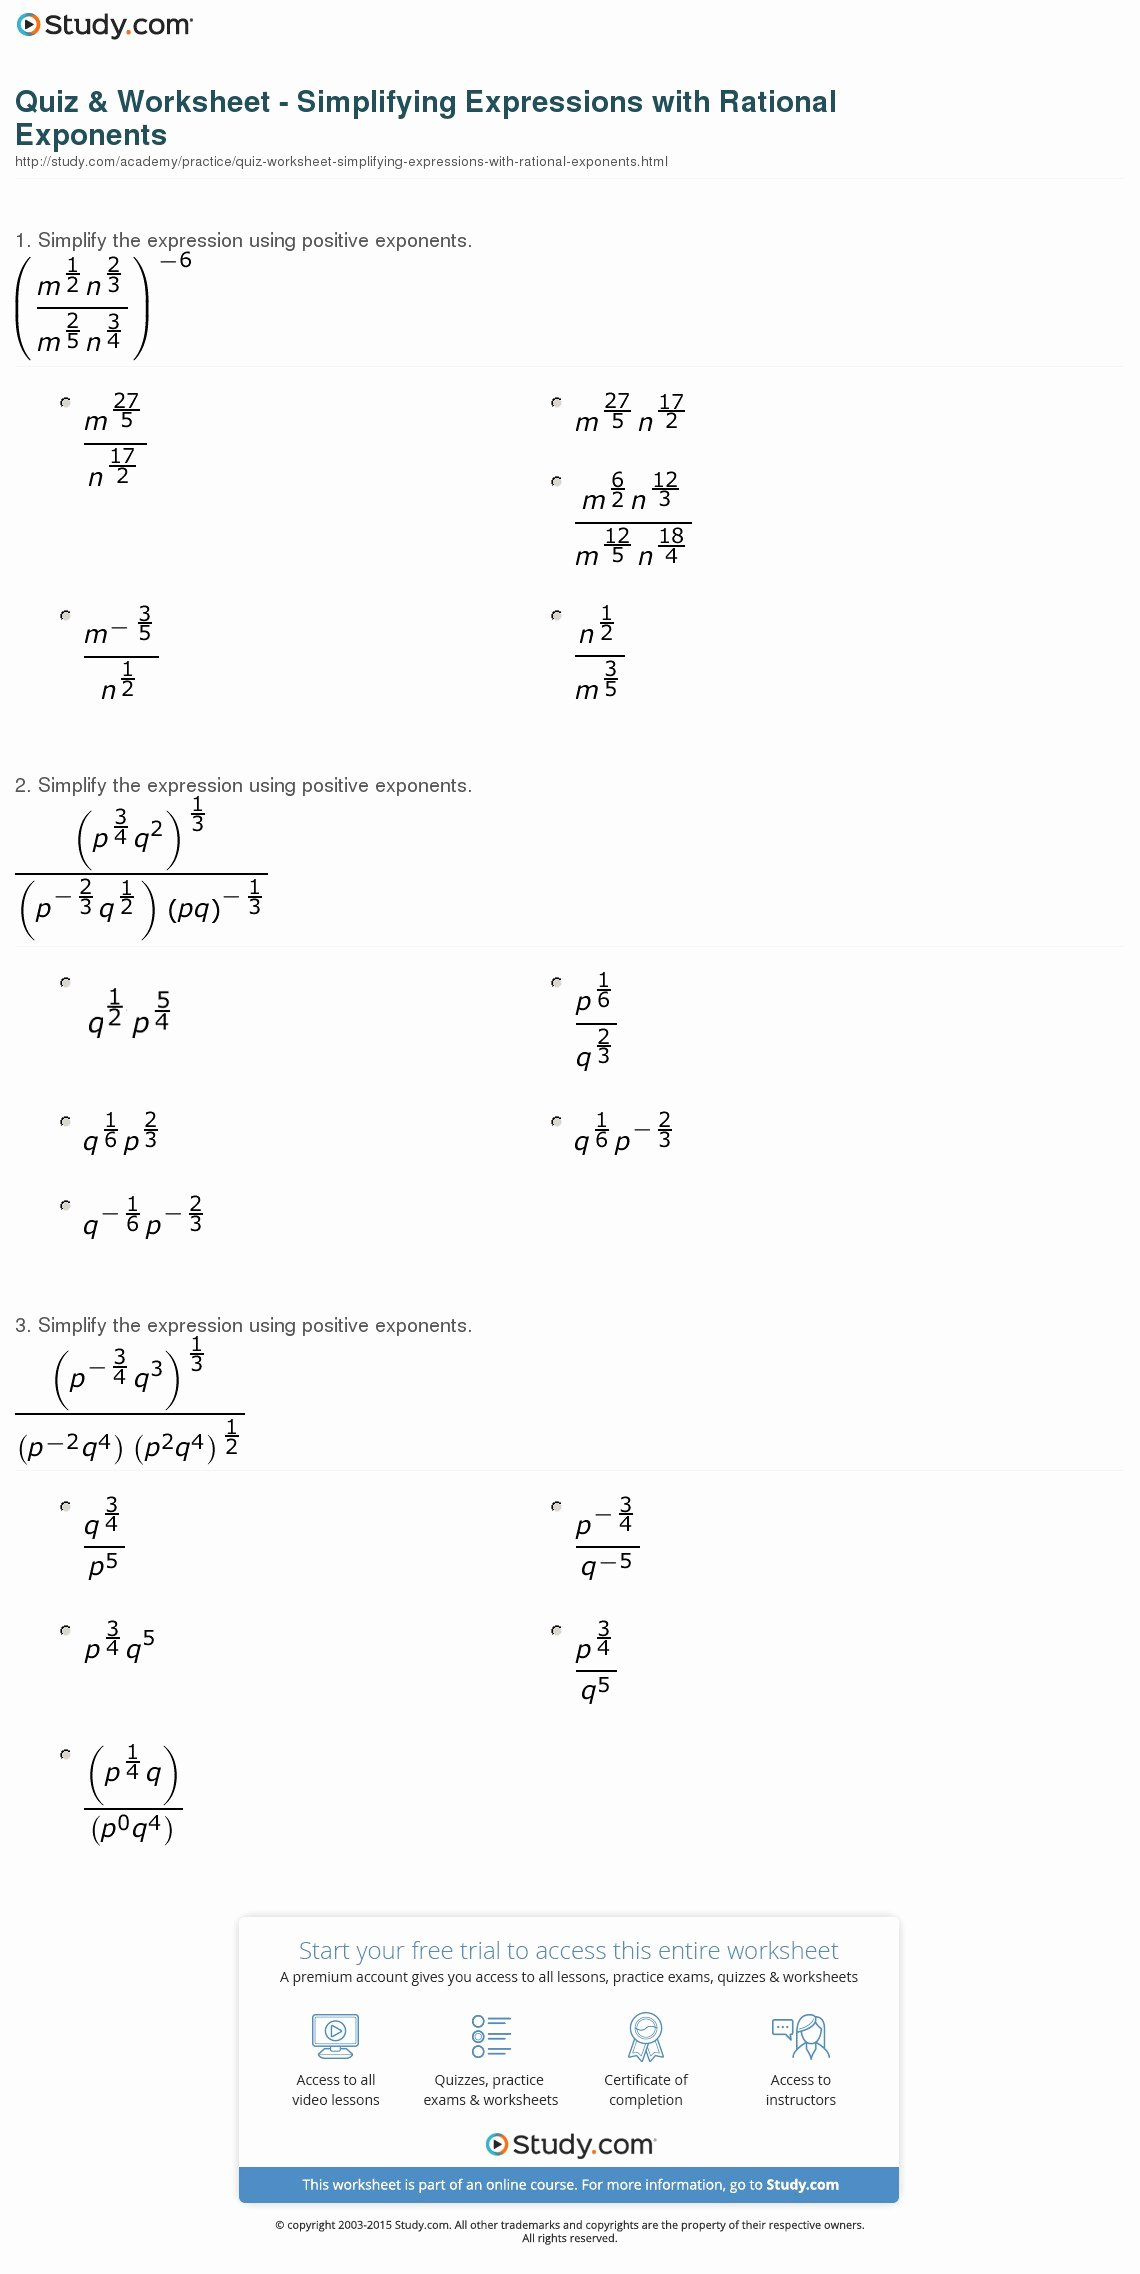 Simplifying Rational Exponents Worksheet Unique Quiz & Worksheet Simplifying Expressions with Rational